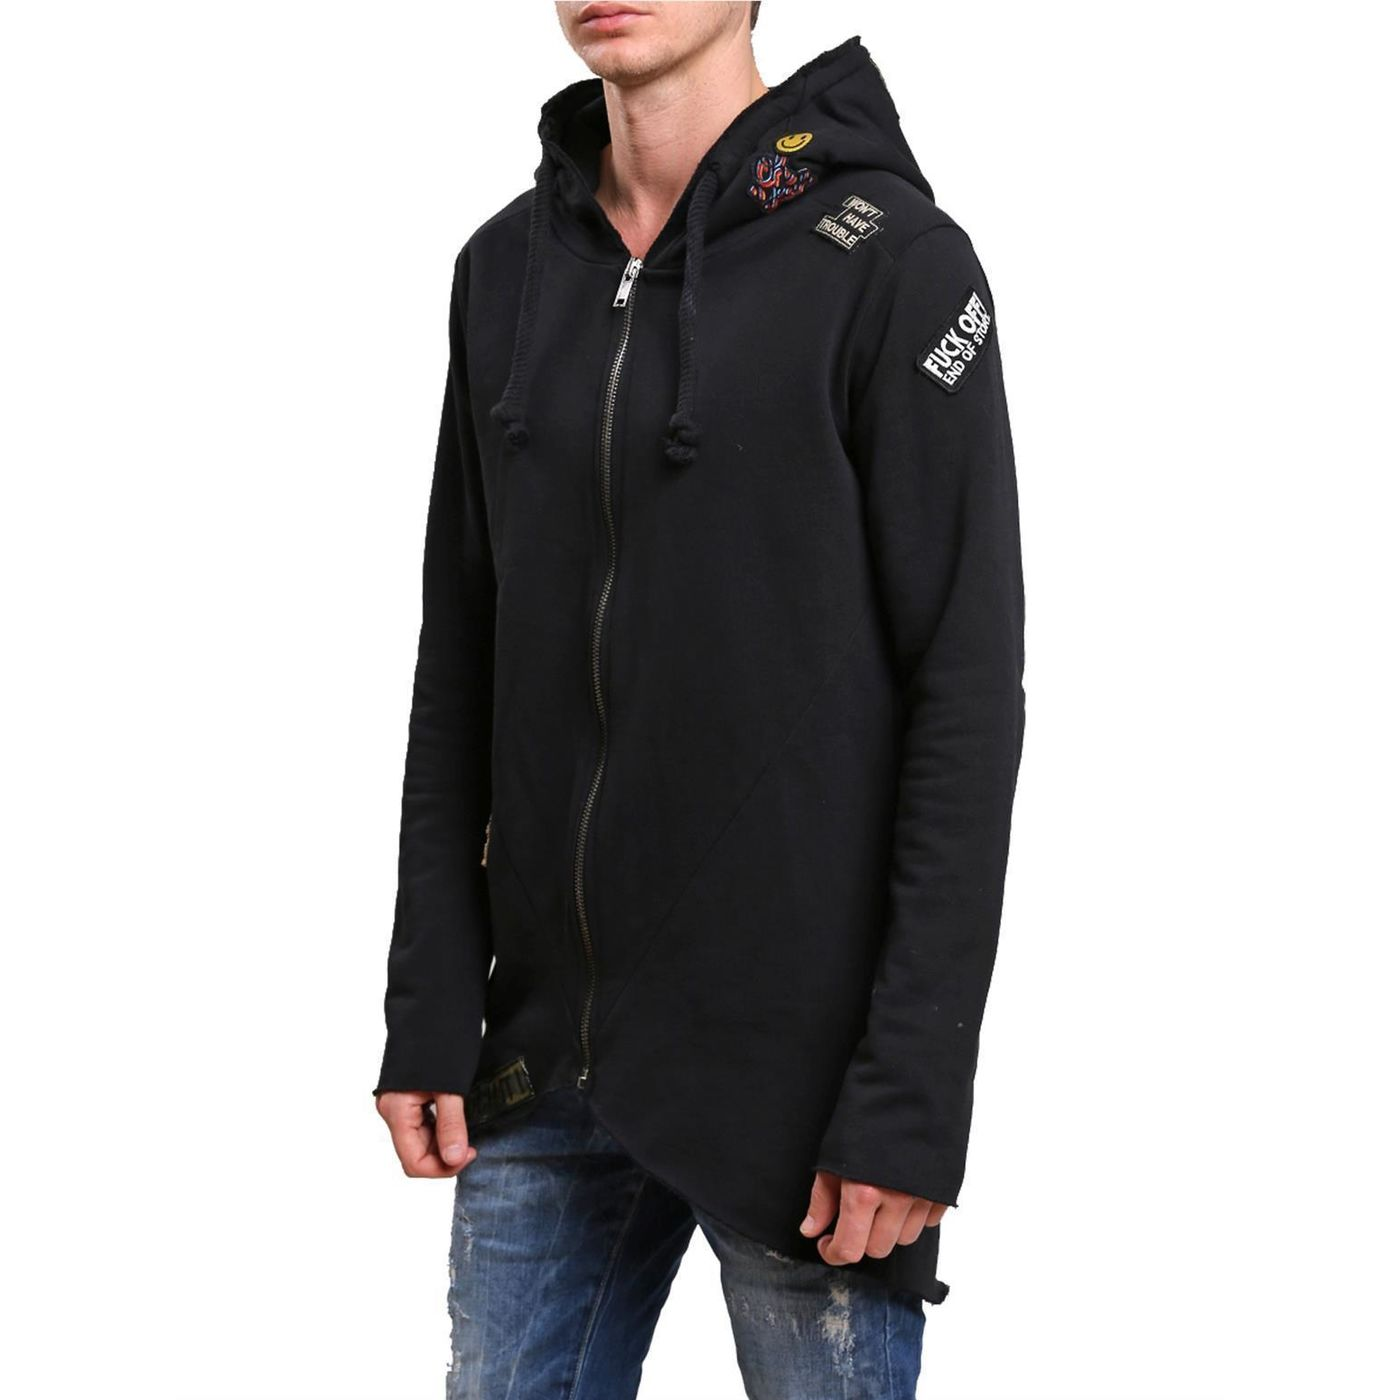 red bridge herren sweatjacke jacke pullover oversize kapuze patches s. Black Bedroom Furniture Sets. Home Design Ideas